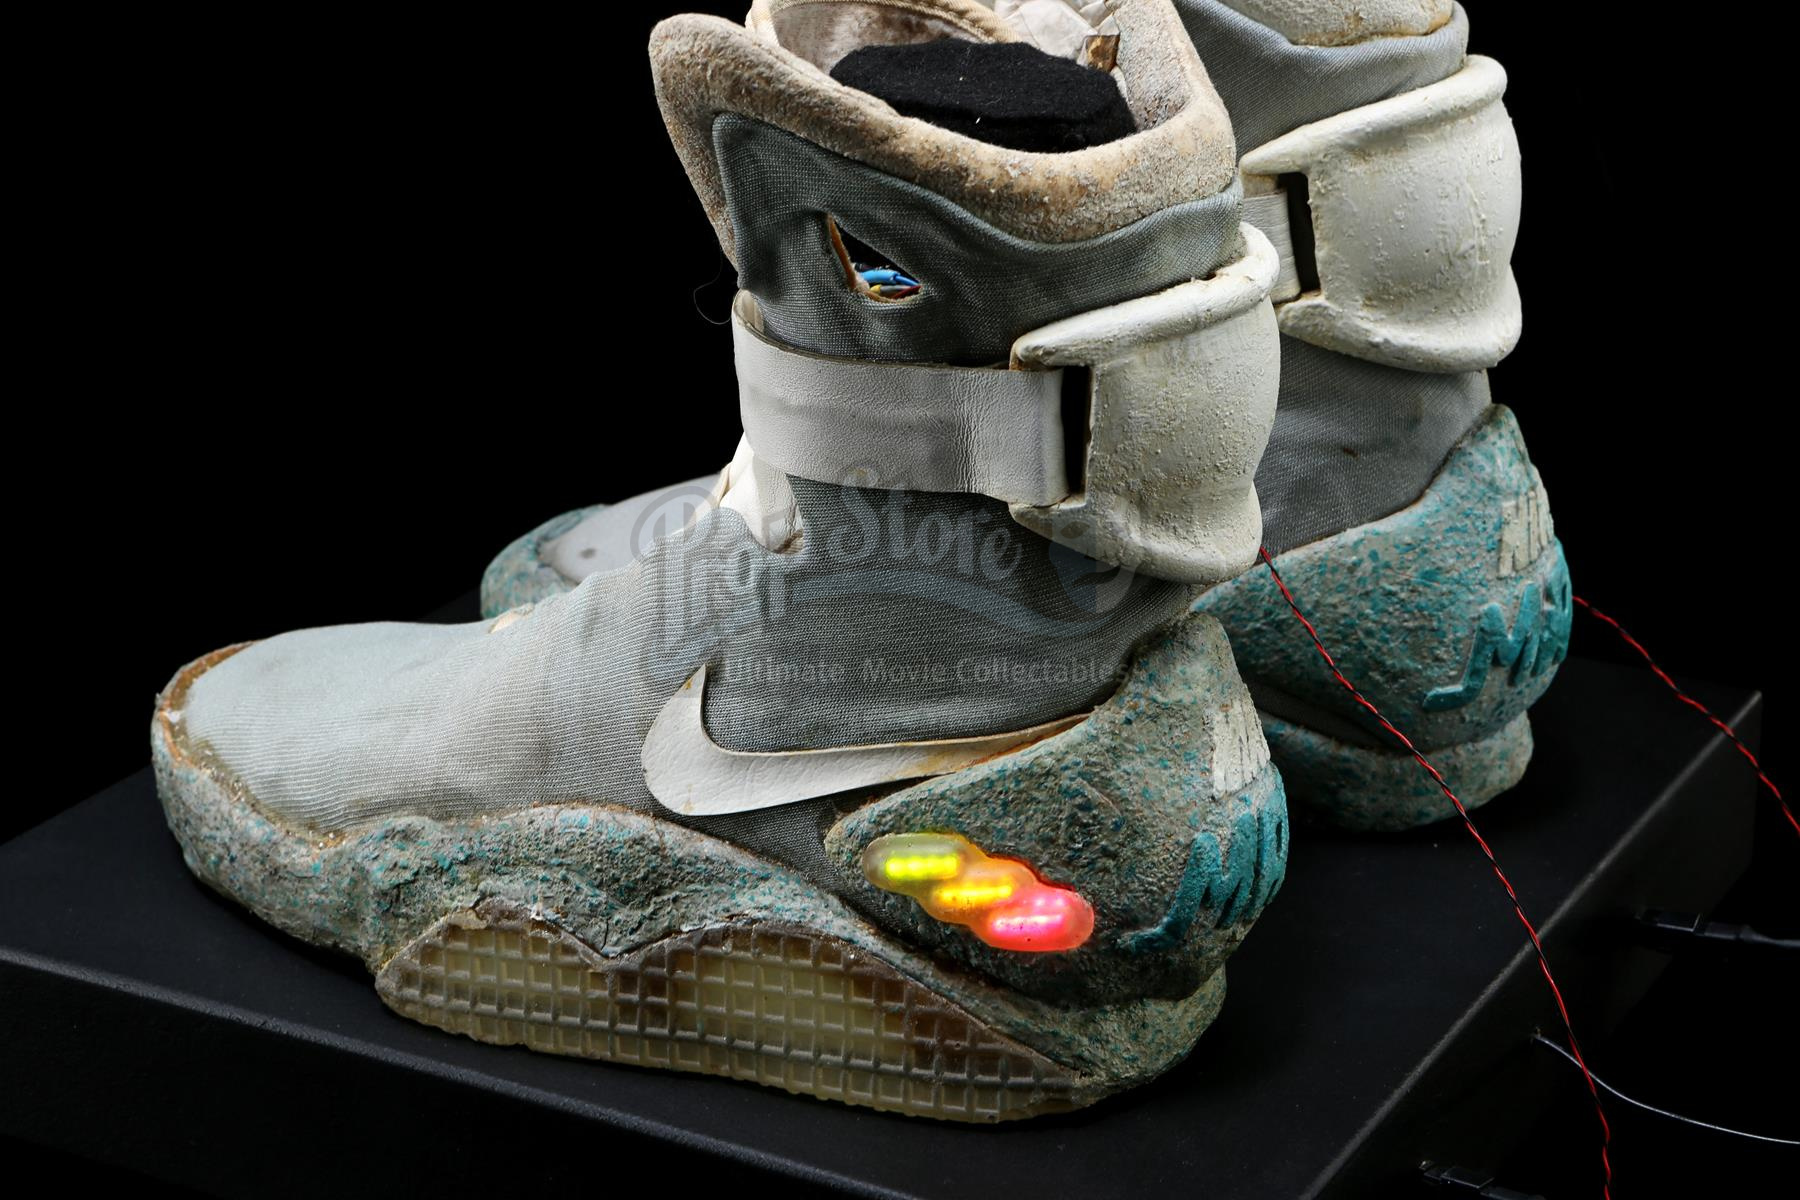 bb8ad2ef1fd Lot    37 Ω. Marty McFly s (Michael J. Fox) Light-Up 2015 Nike Shoes BACK  TO THE FUTURE PART II ...